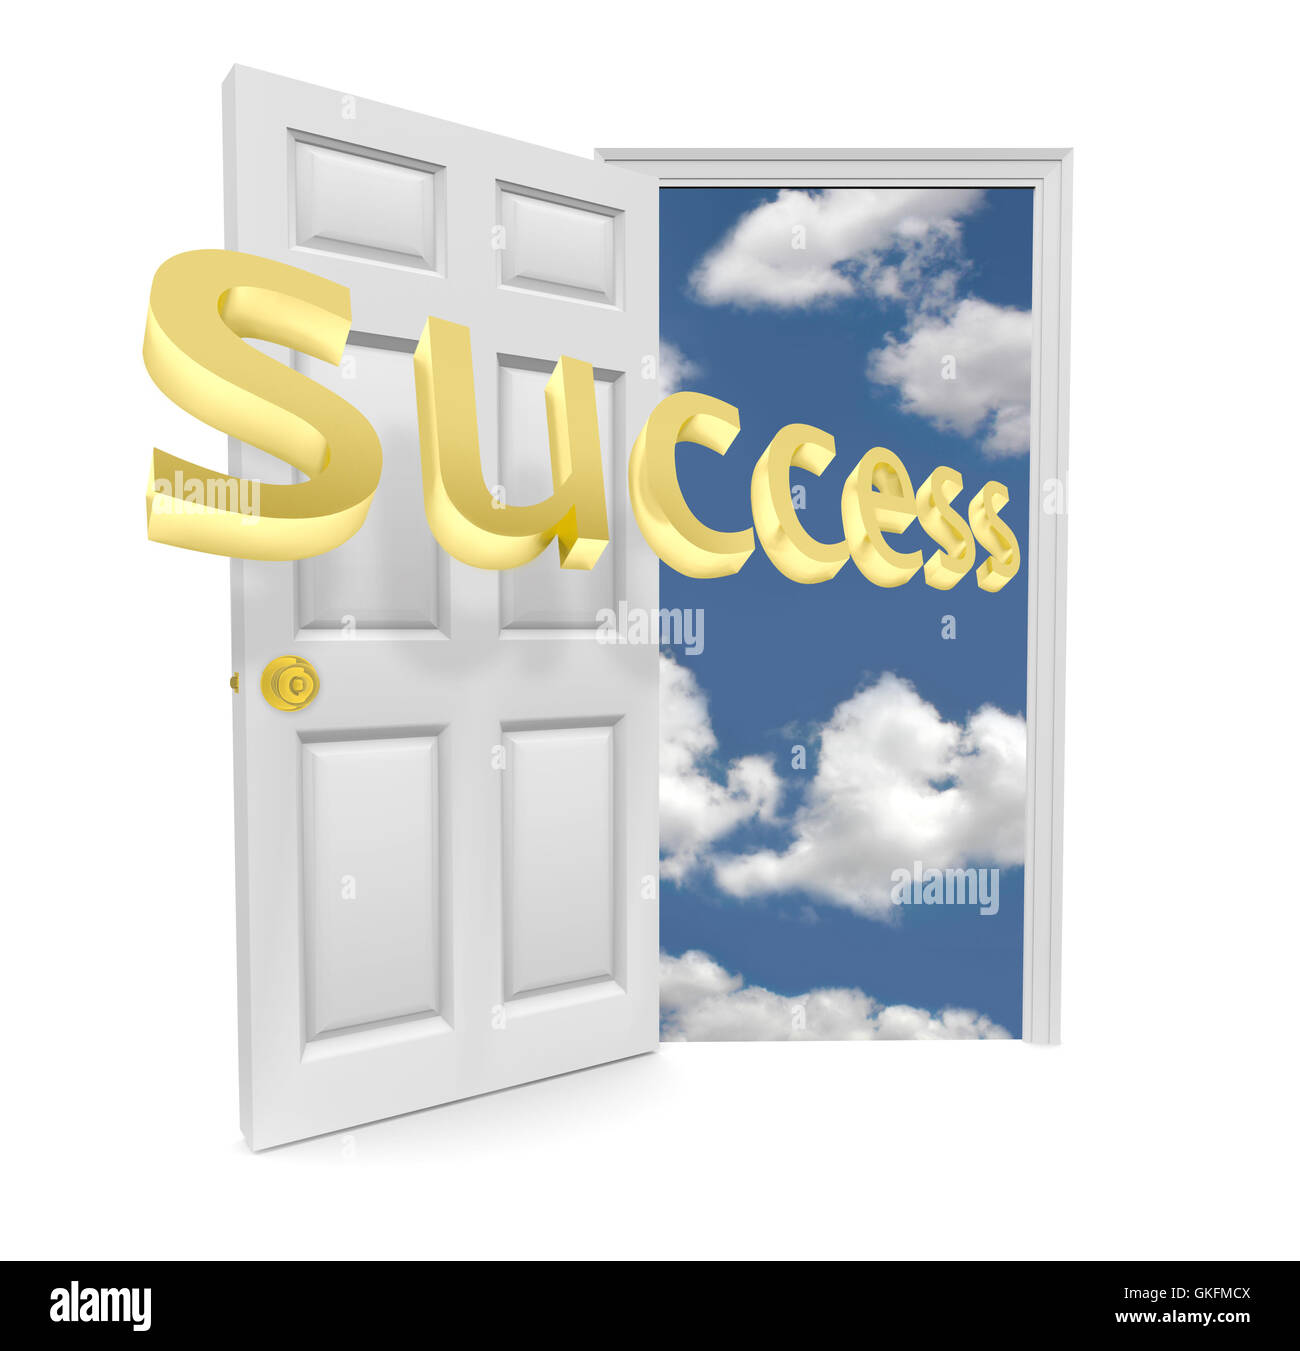 The Door to Opportunity - Success - Stock Image